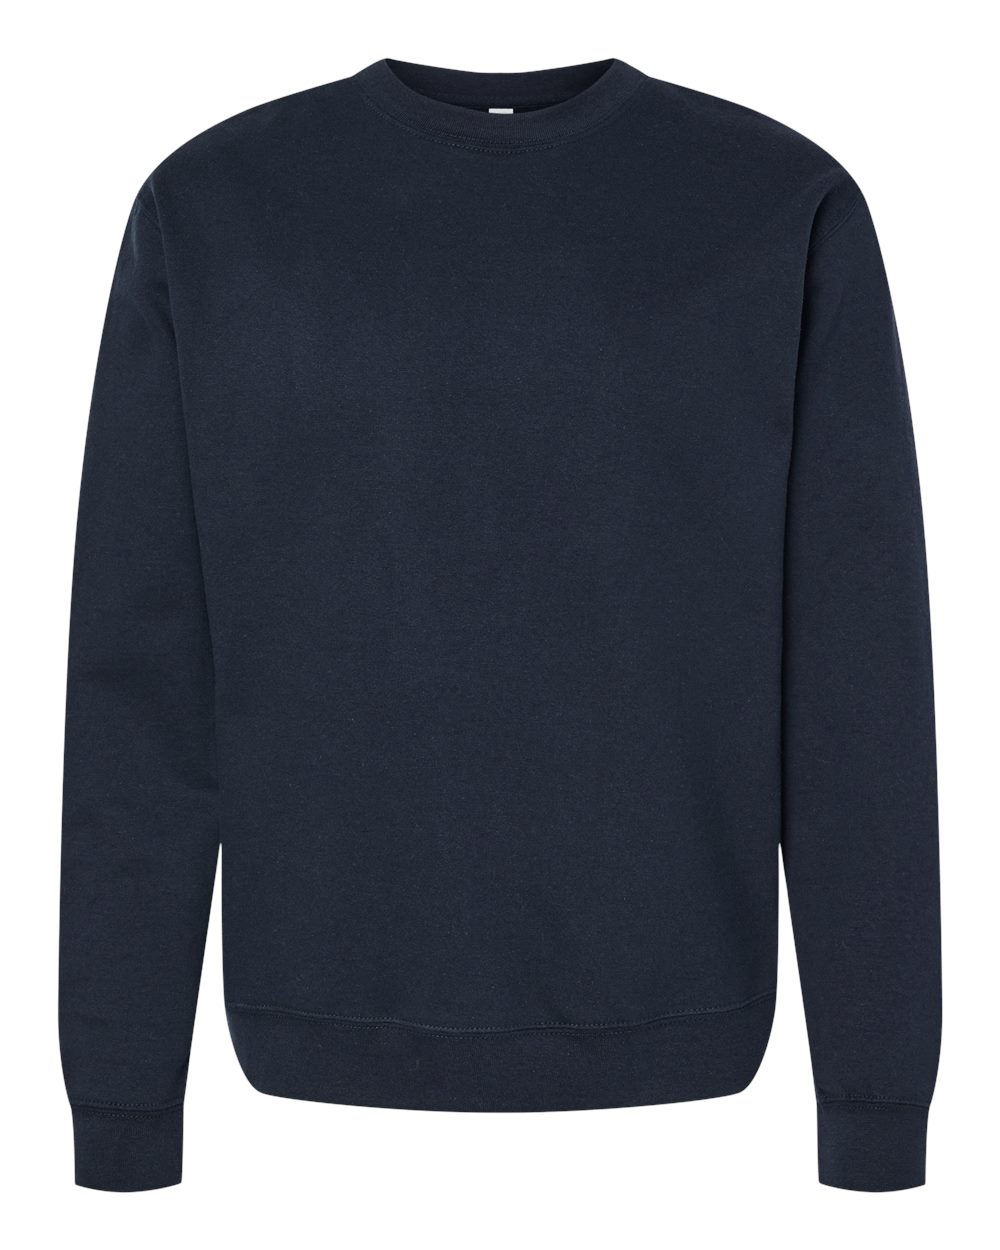 Independent-Trading-Co-Midweight-Crewneck-Sweatshirt-SS3000-up-to-3XL miniature 15